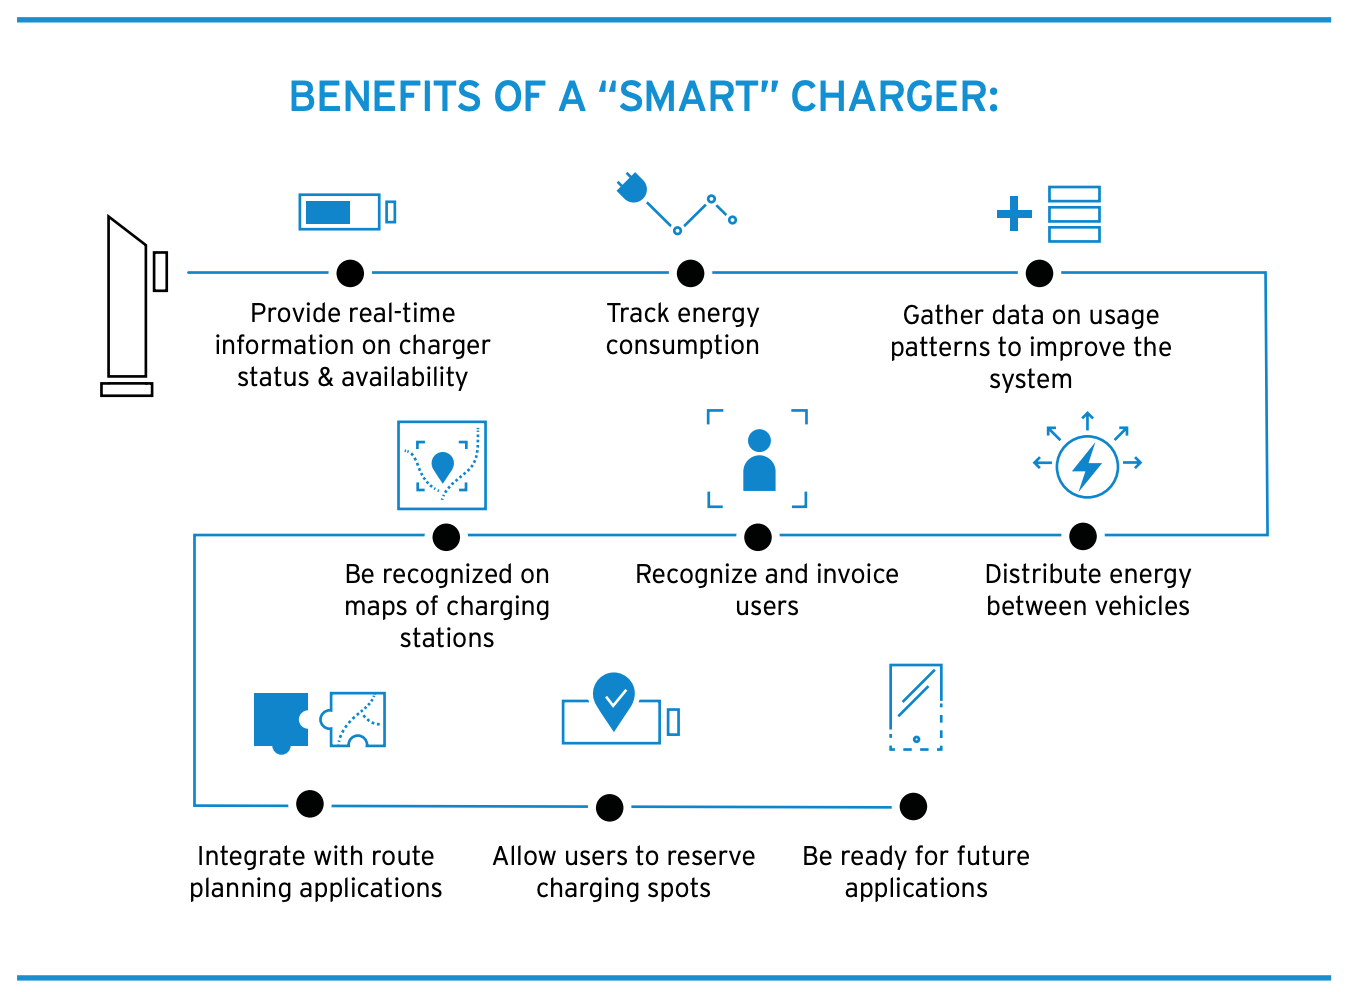 Technical Design Guidelines For Ev Charging Infrastructure Cleantechnica Report,Pictures For Bathroom Walls